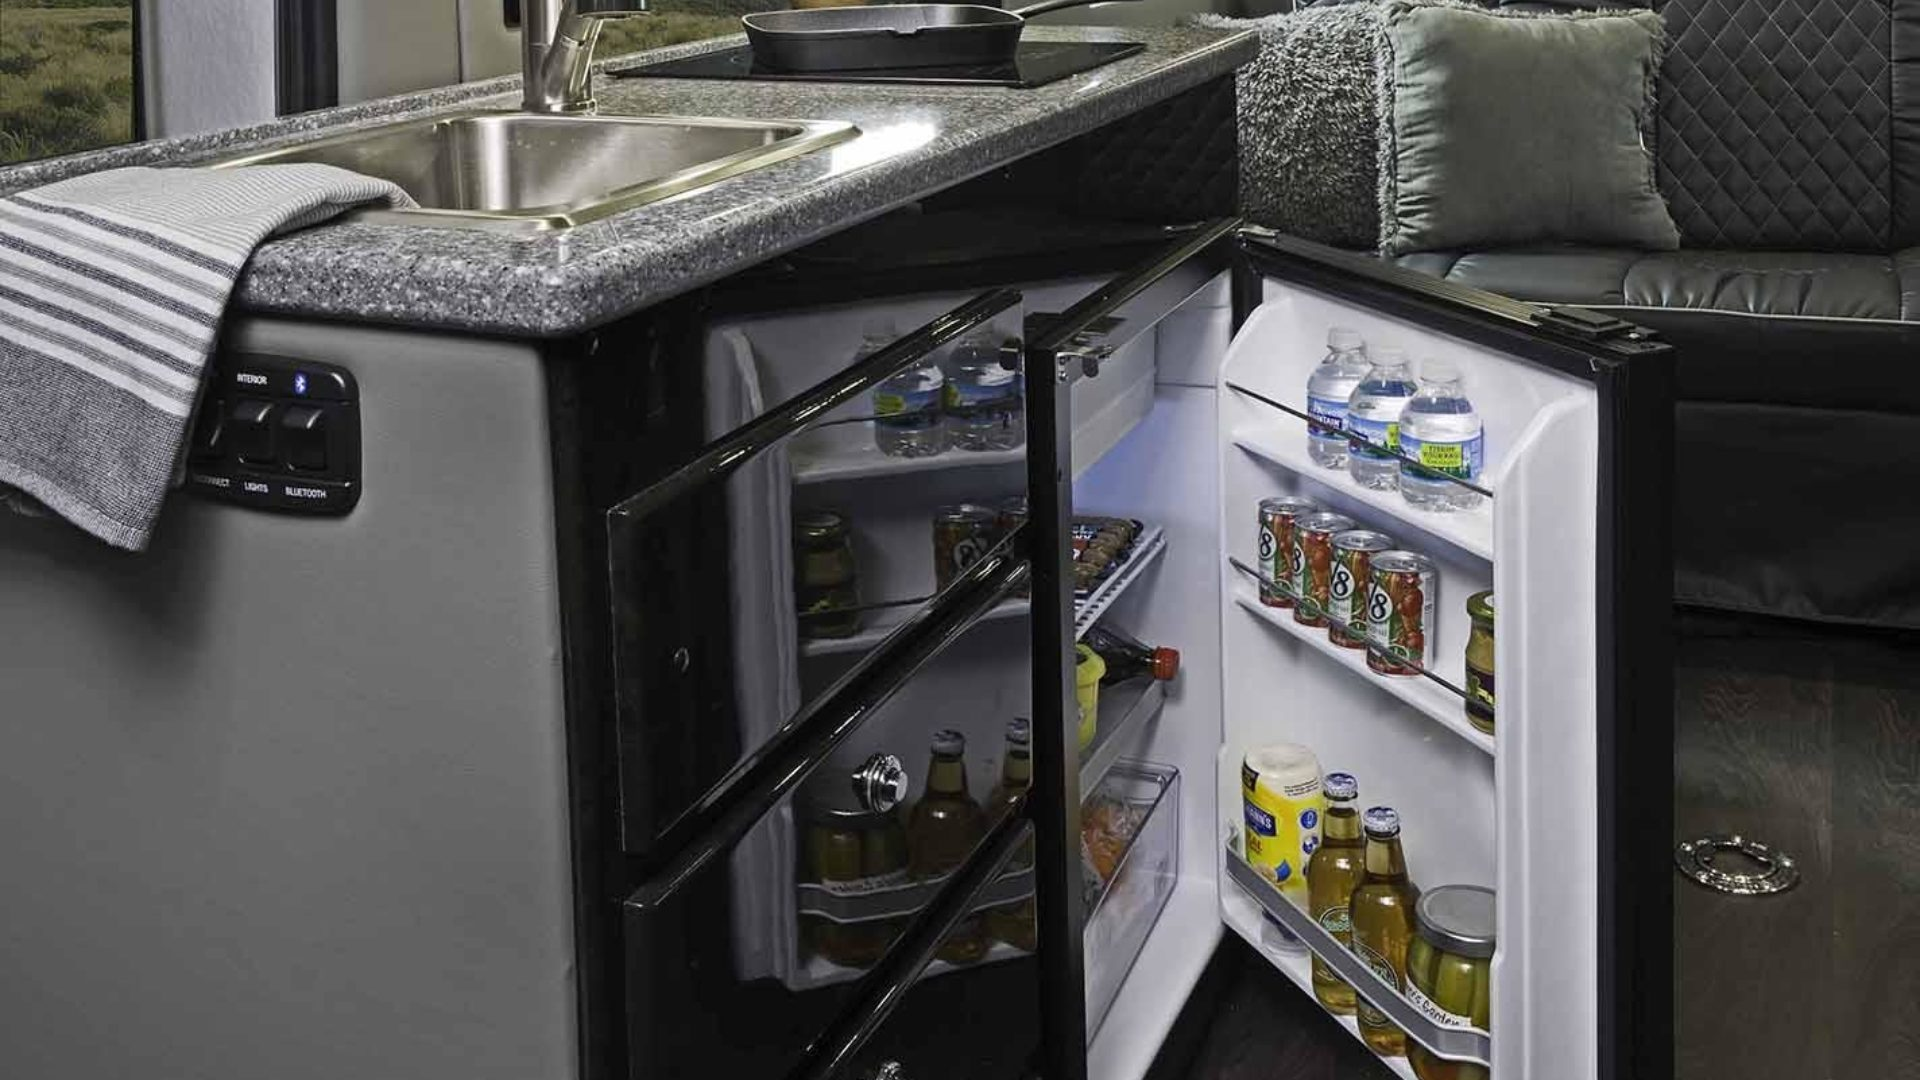 Residential living with refrigerator and cooktop.